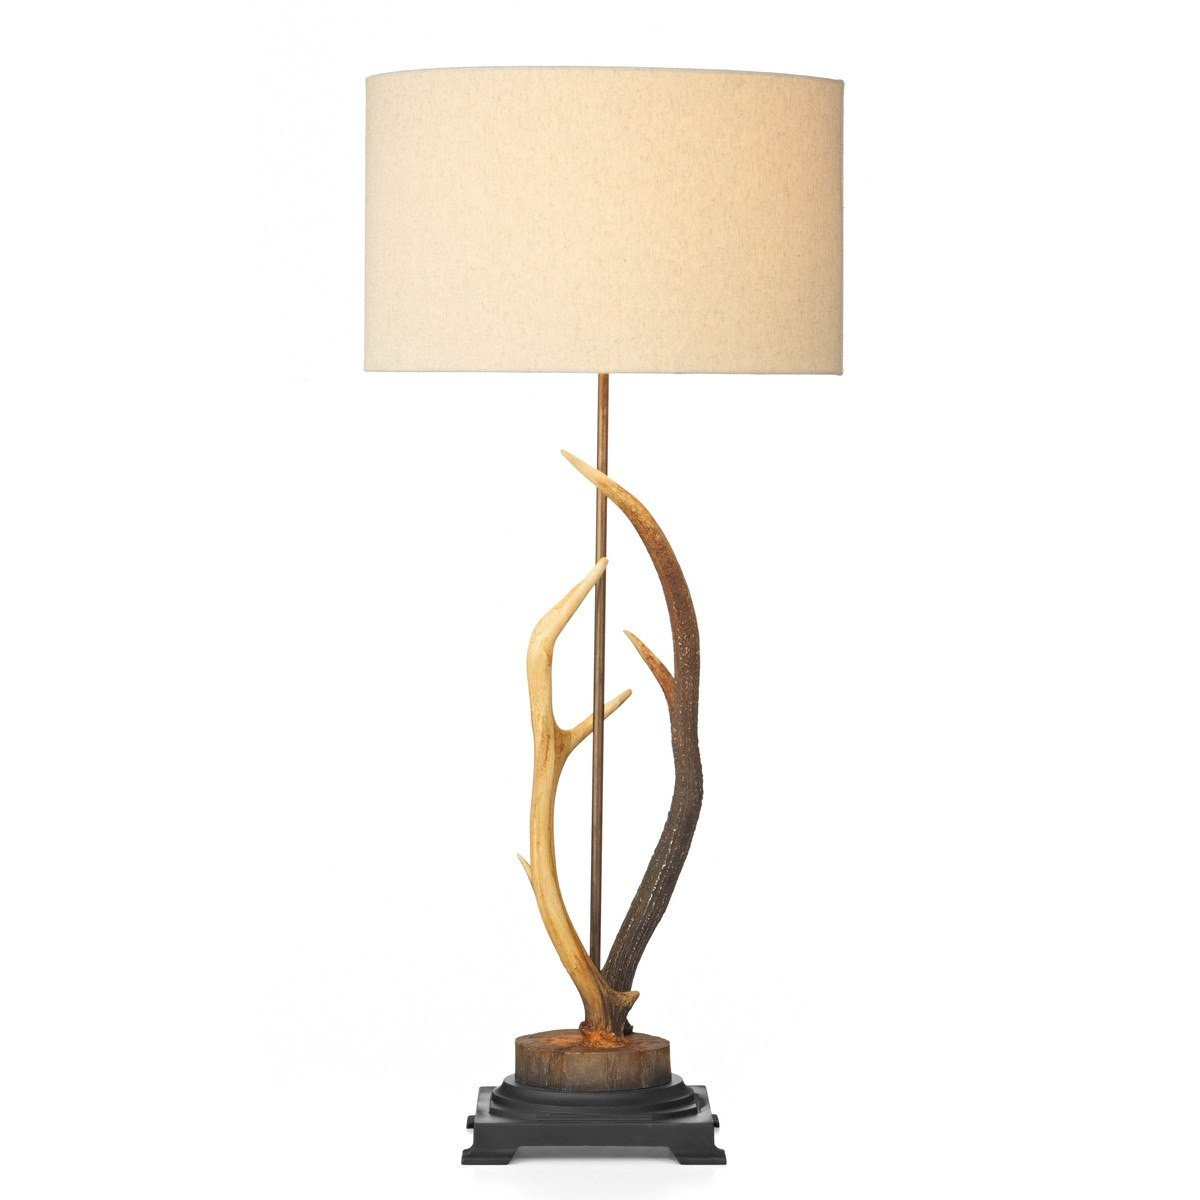 Antler Rustic Large Table Lamp - London Lighting - 1